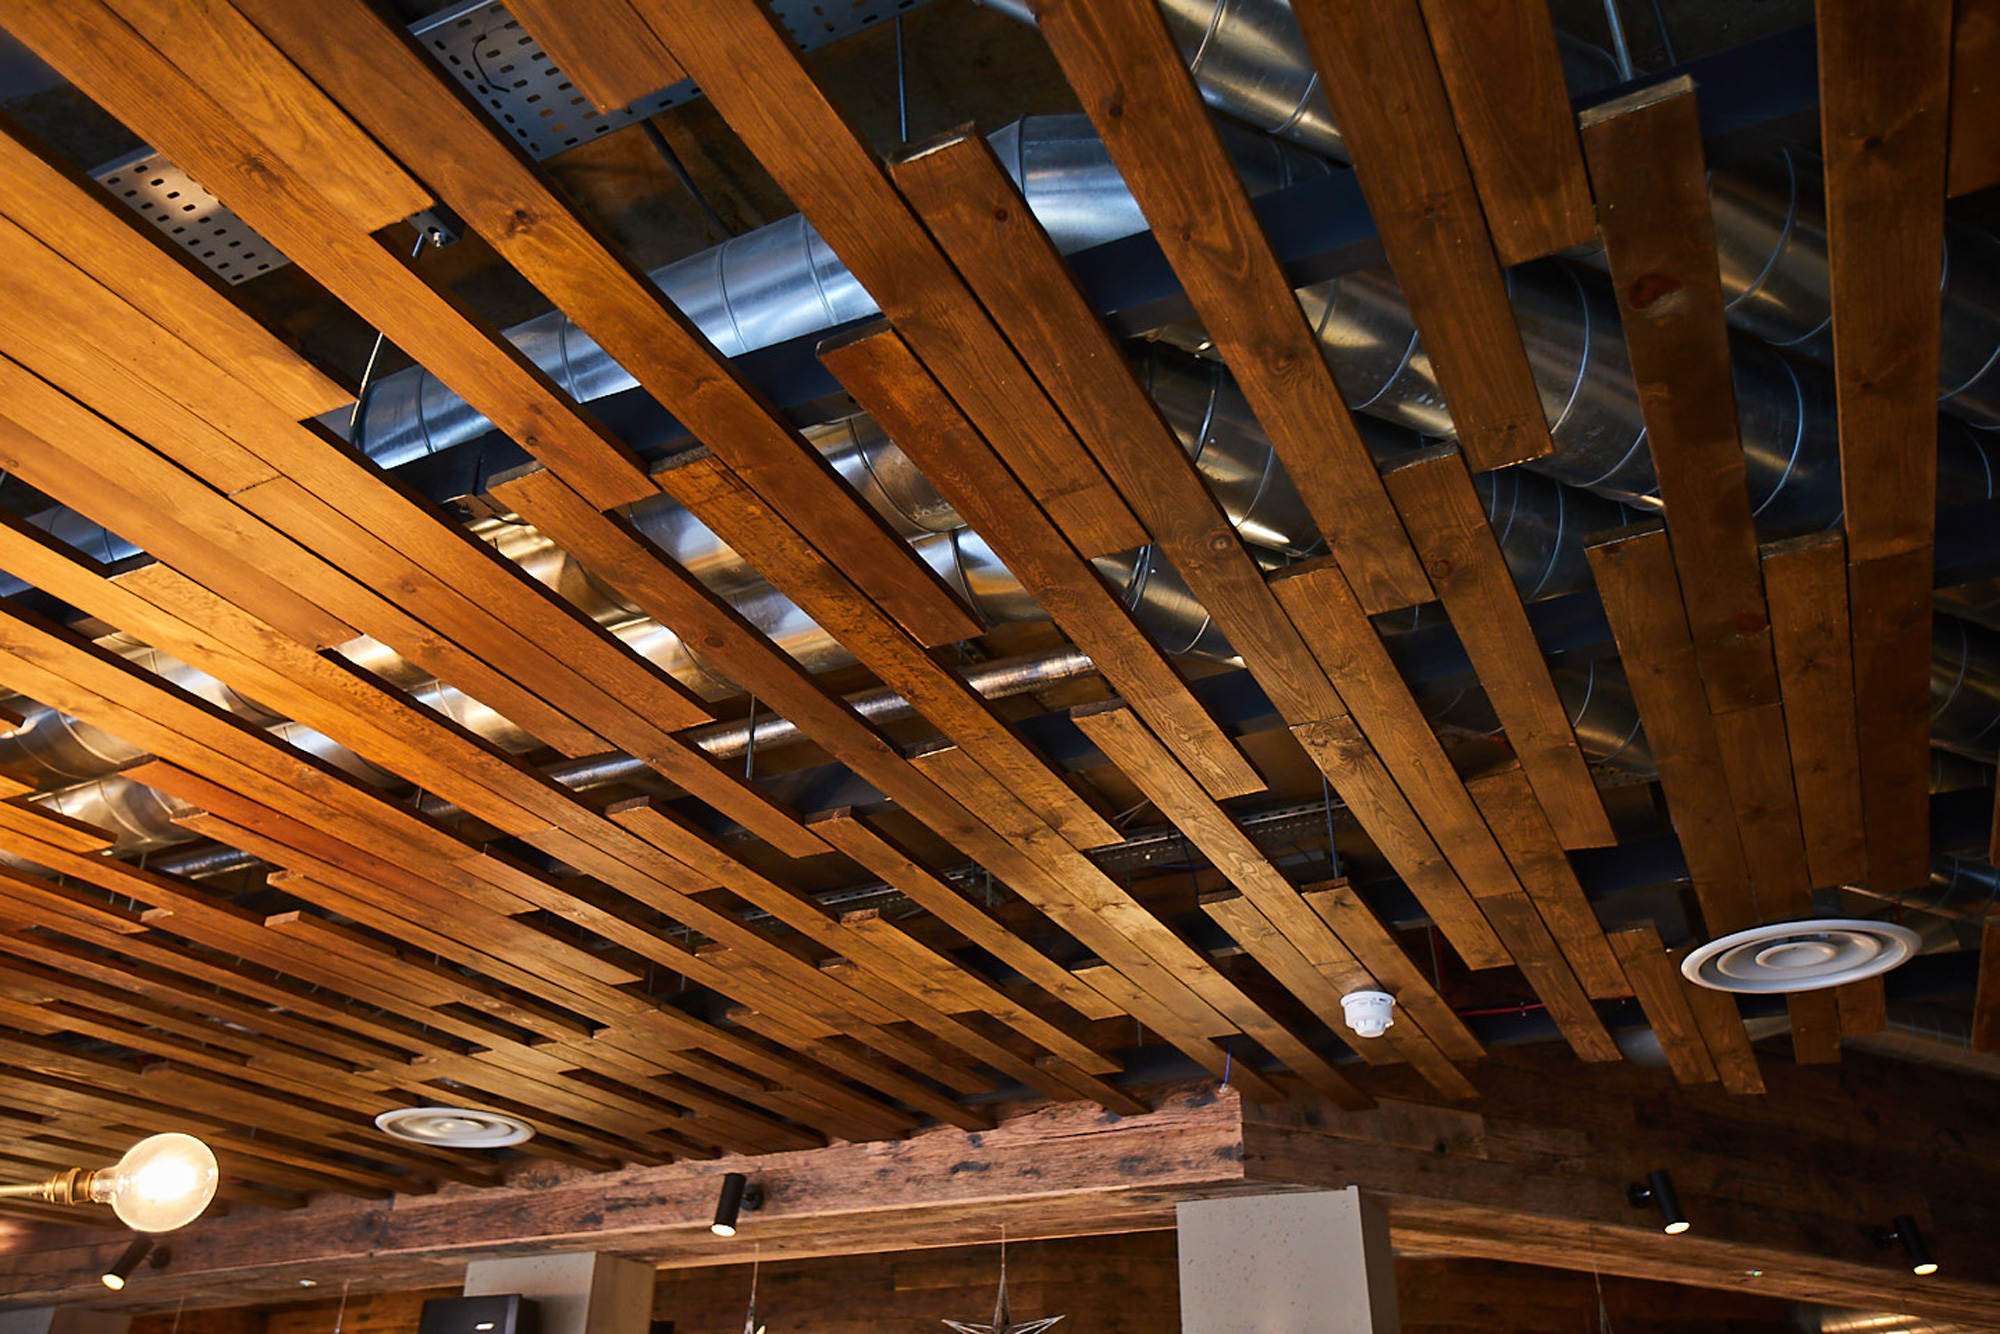 Oak wood planks used as eatery ceiling